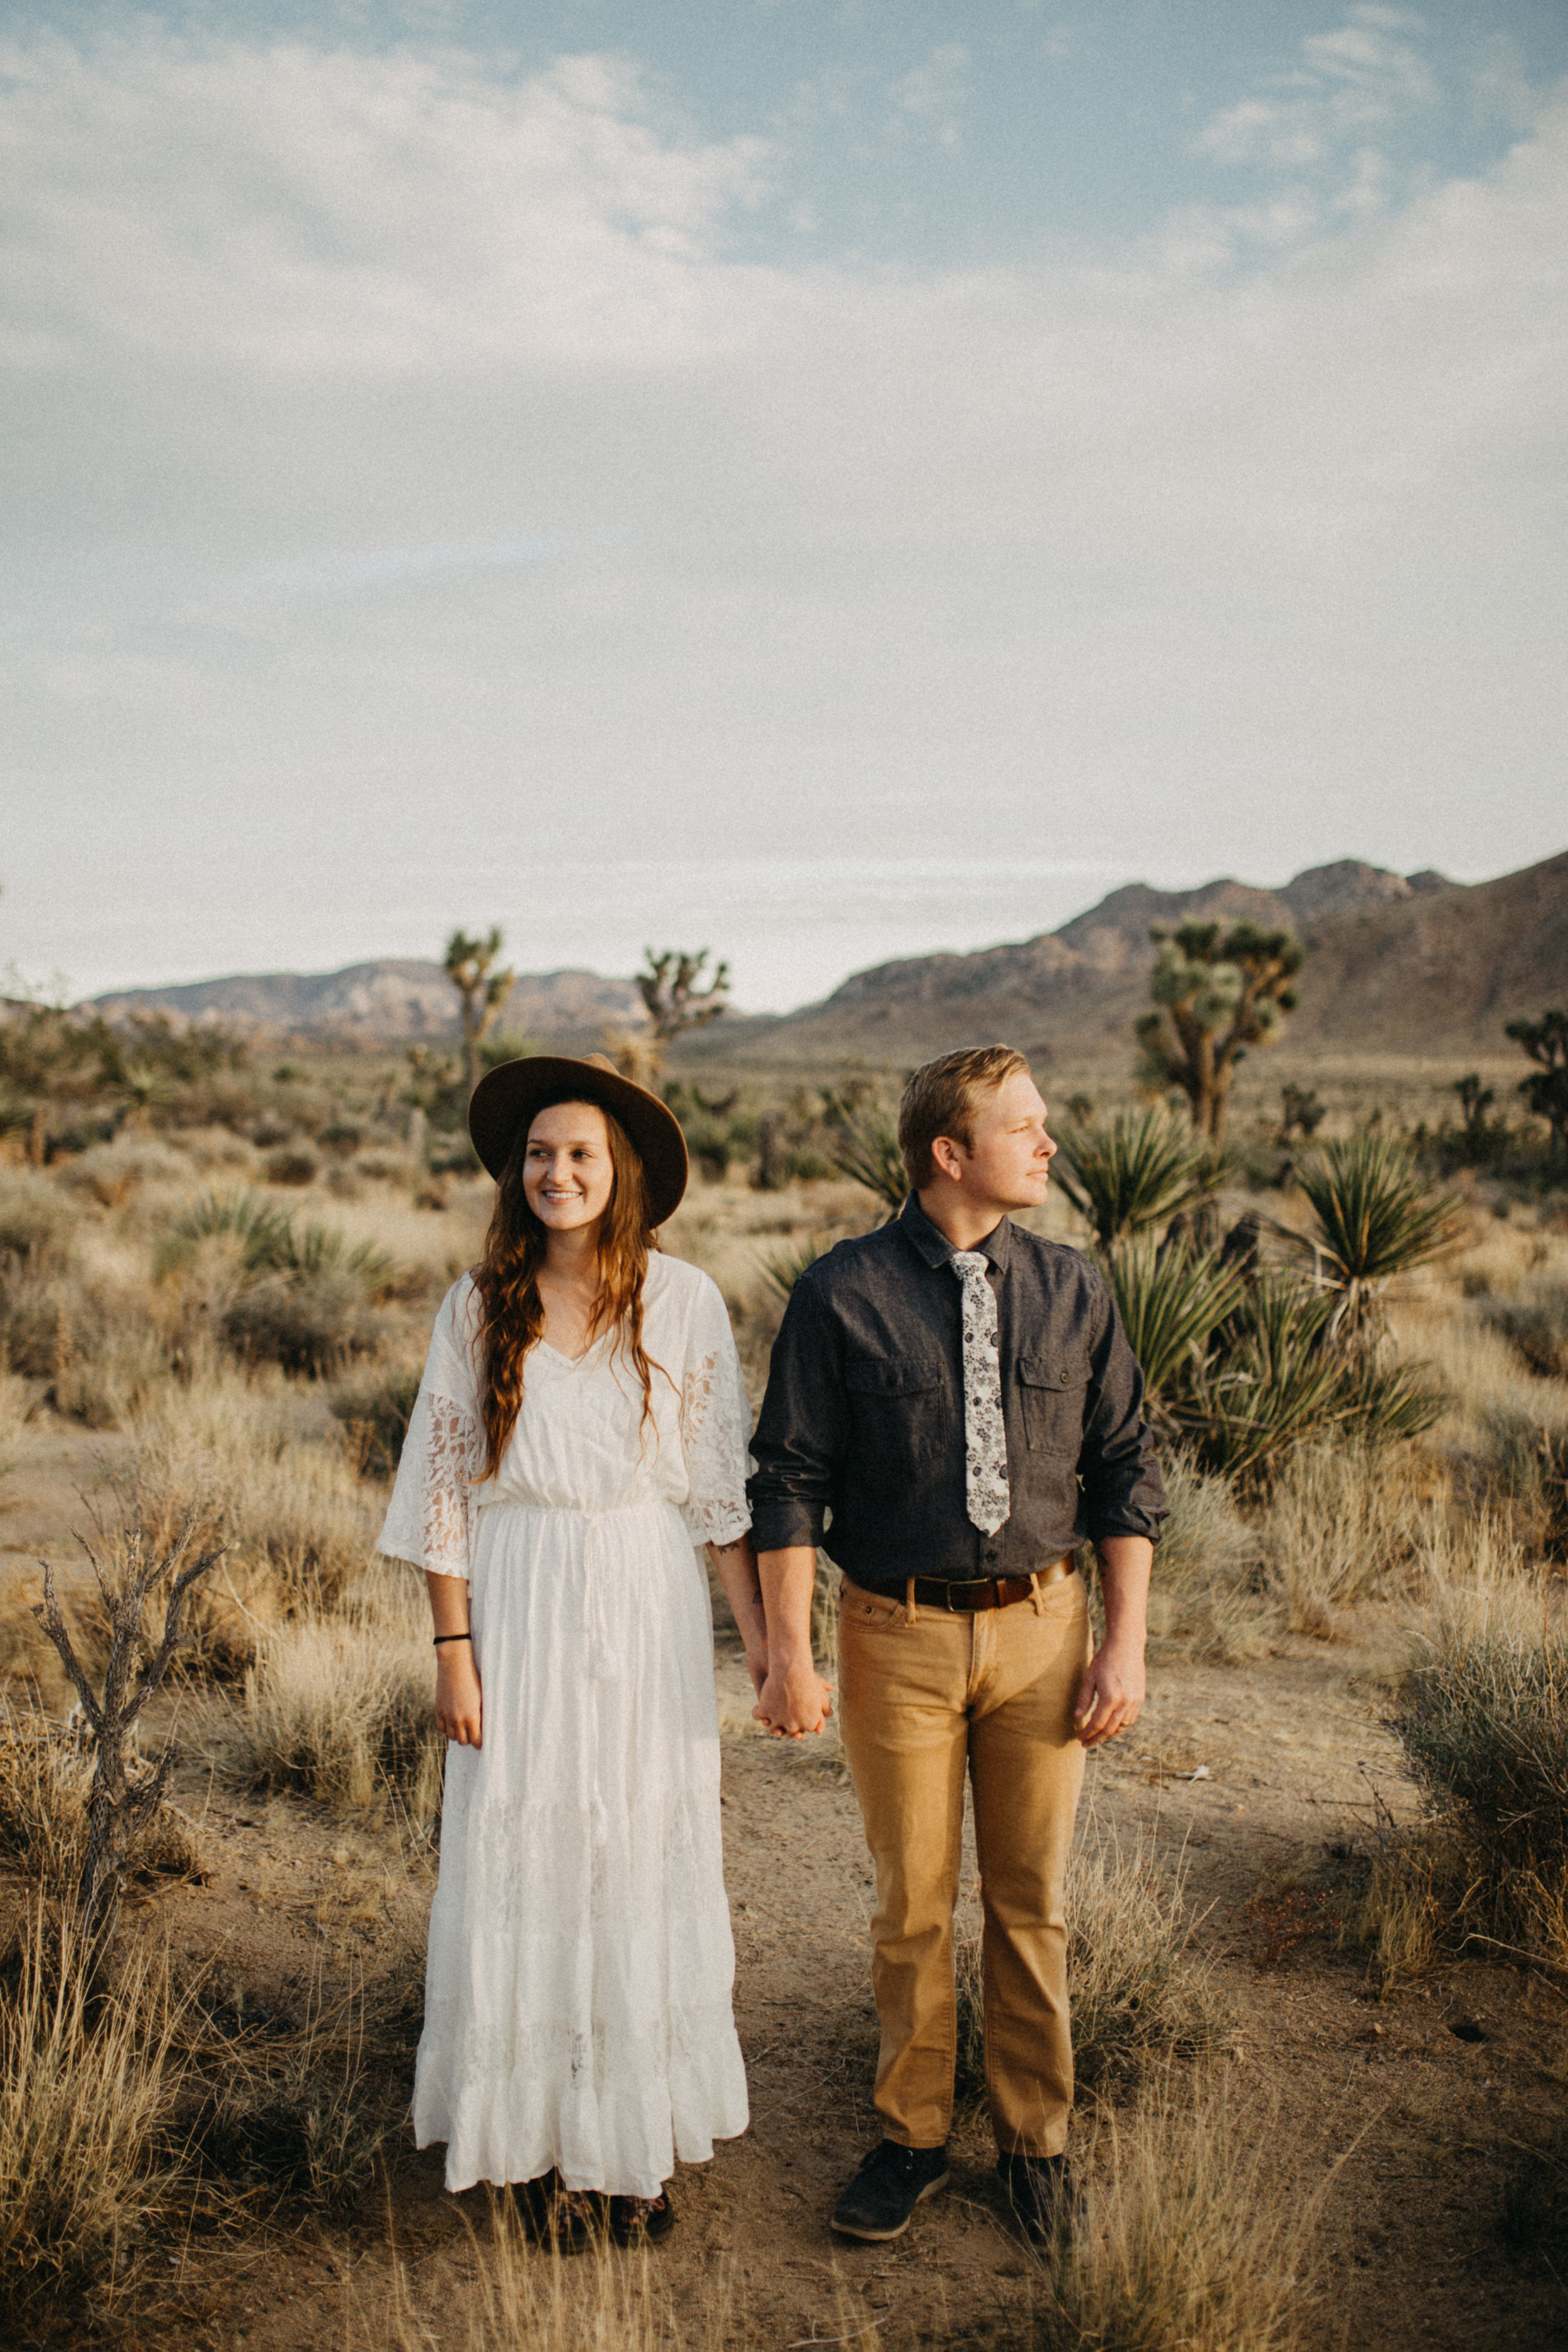 Joshua Tree National Park Adventure Couples Session Photographer Payton Marie Photography-14.jpg